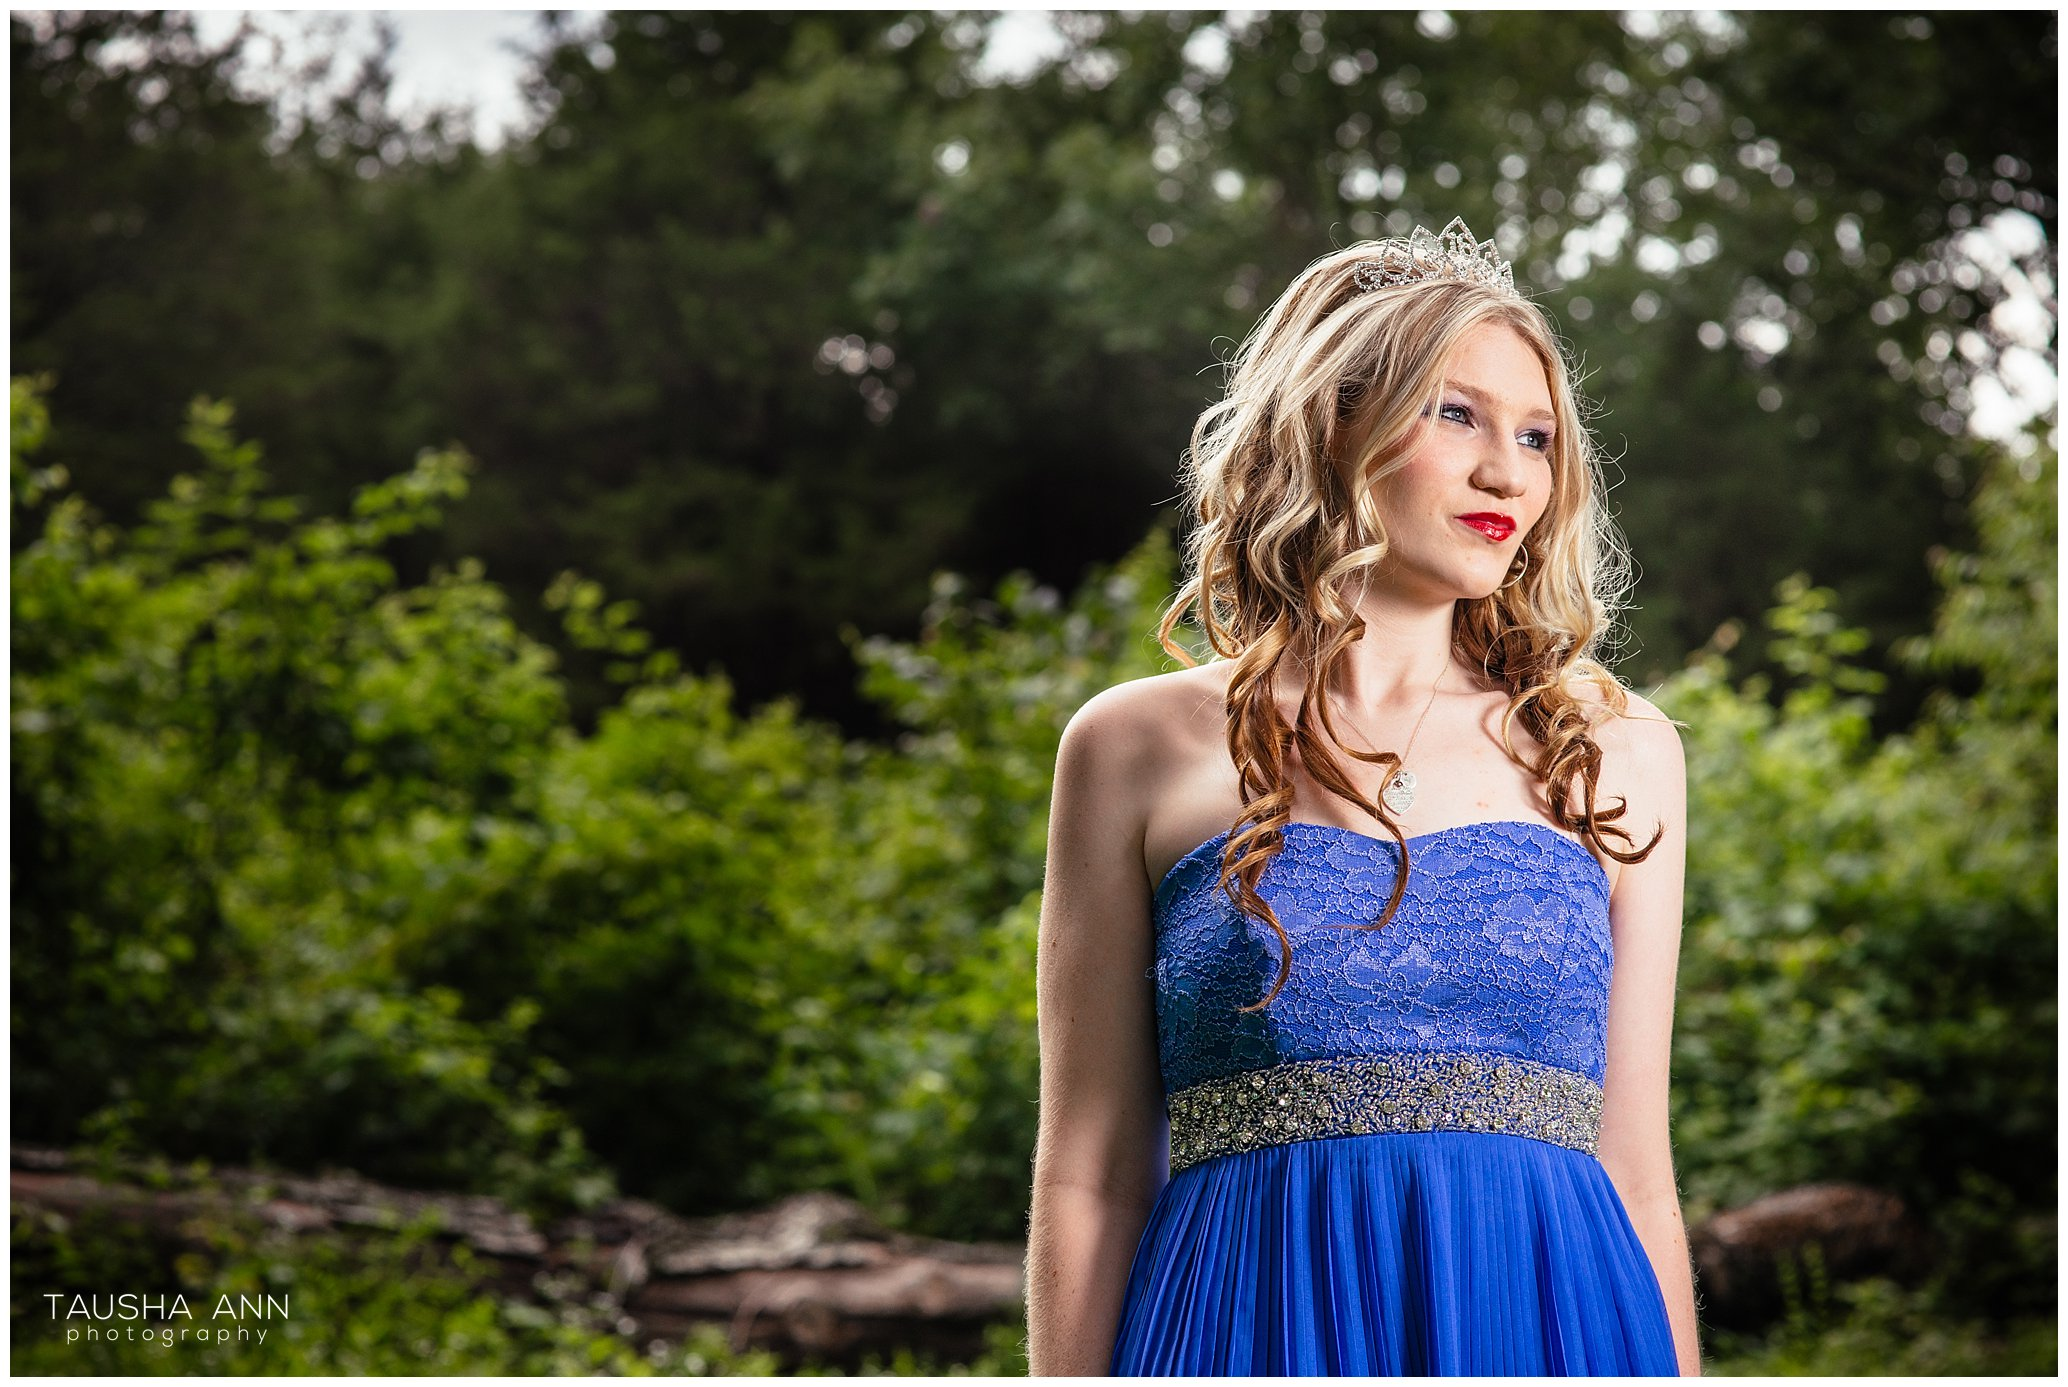 Sammie's_Sweet_16_Duck_Pond_Farm_Mt_Juliet_Tausha_Ann_Photography_Model_Nashville_Franklin_Beautiful_Blonde_Tiara.jpg